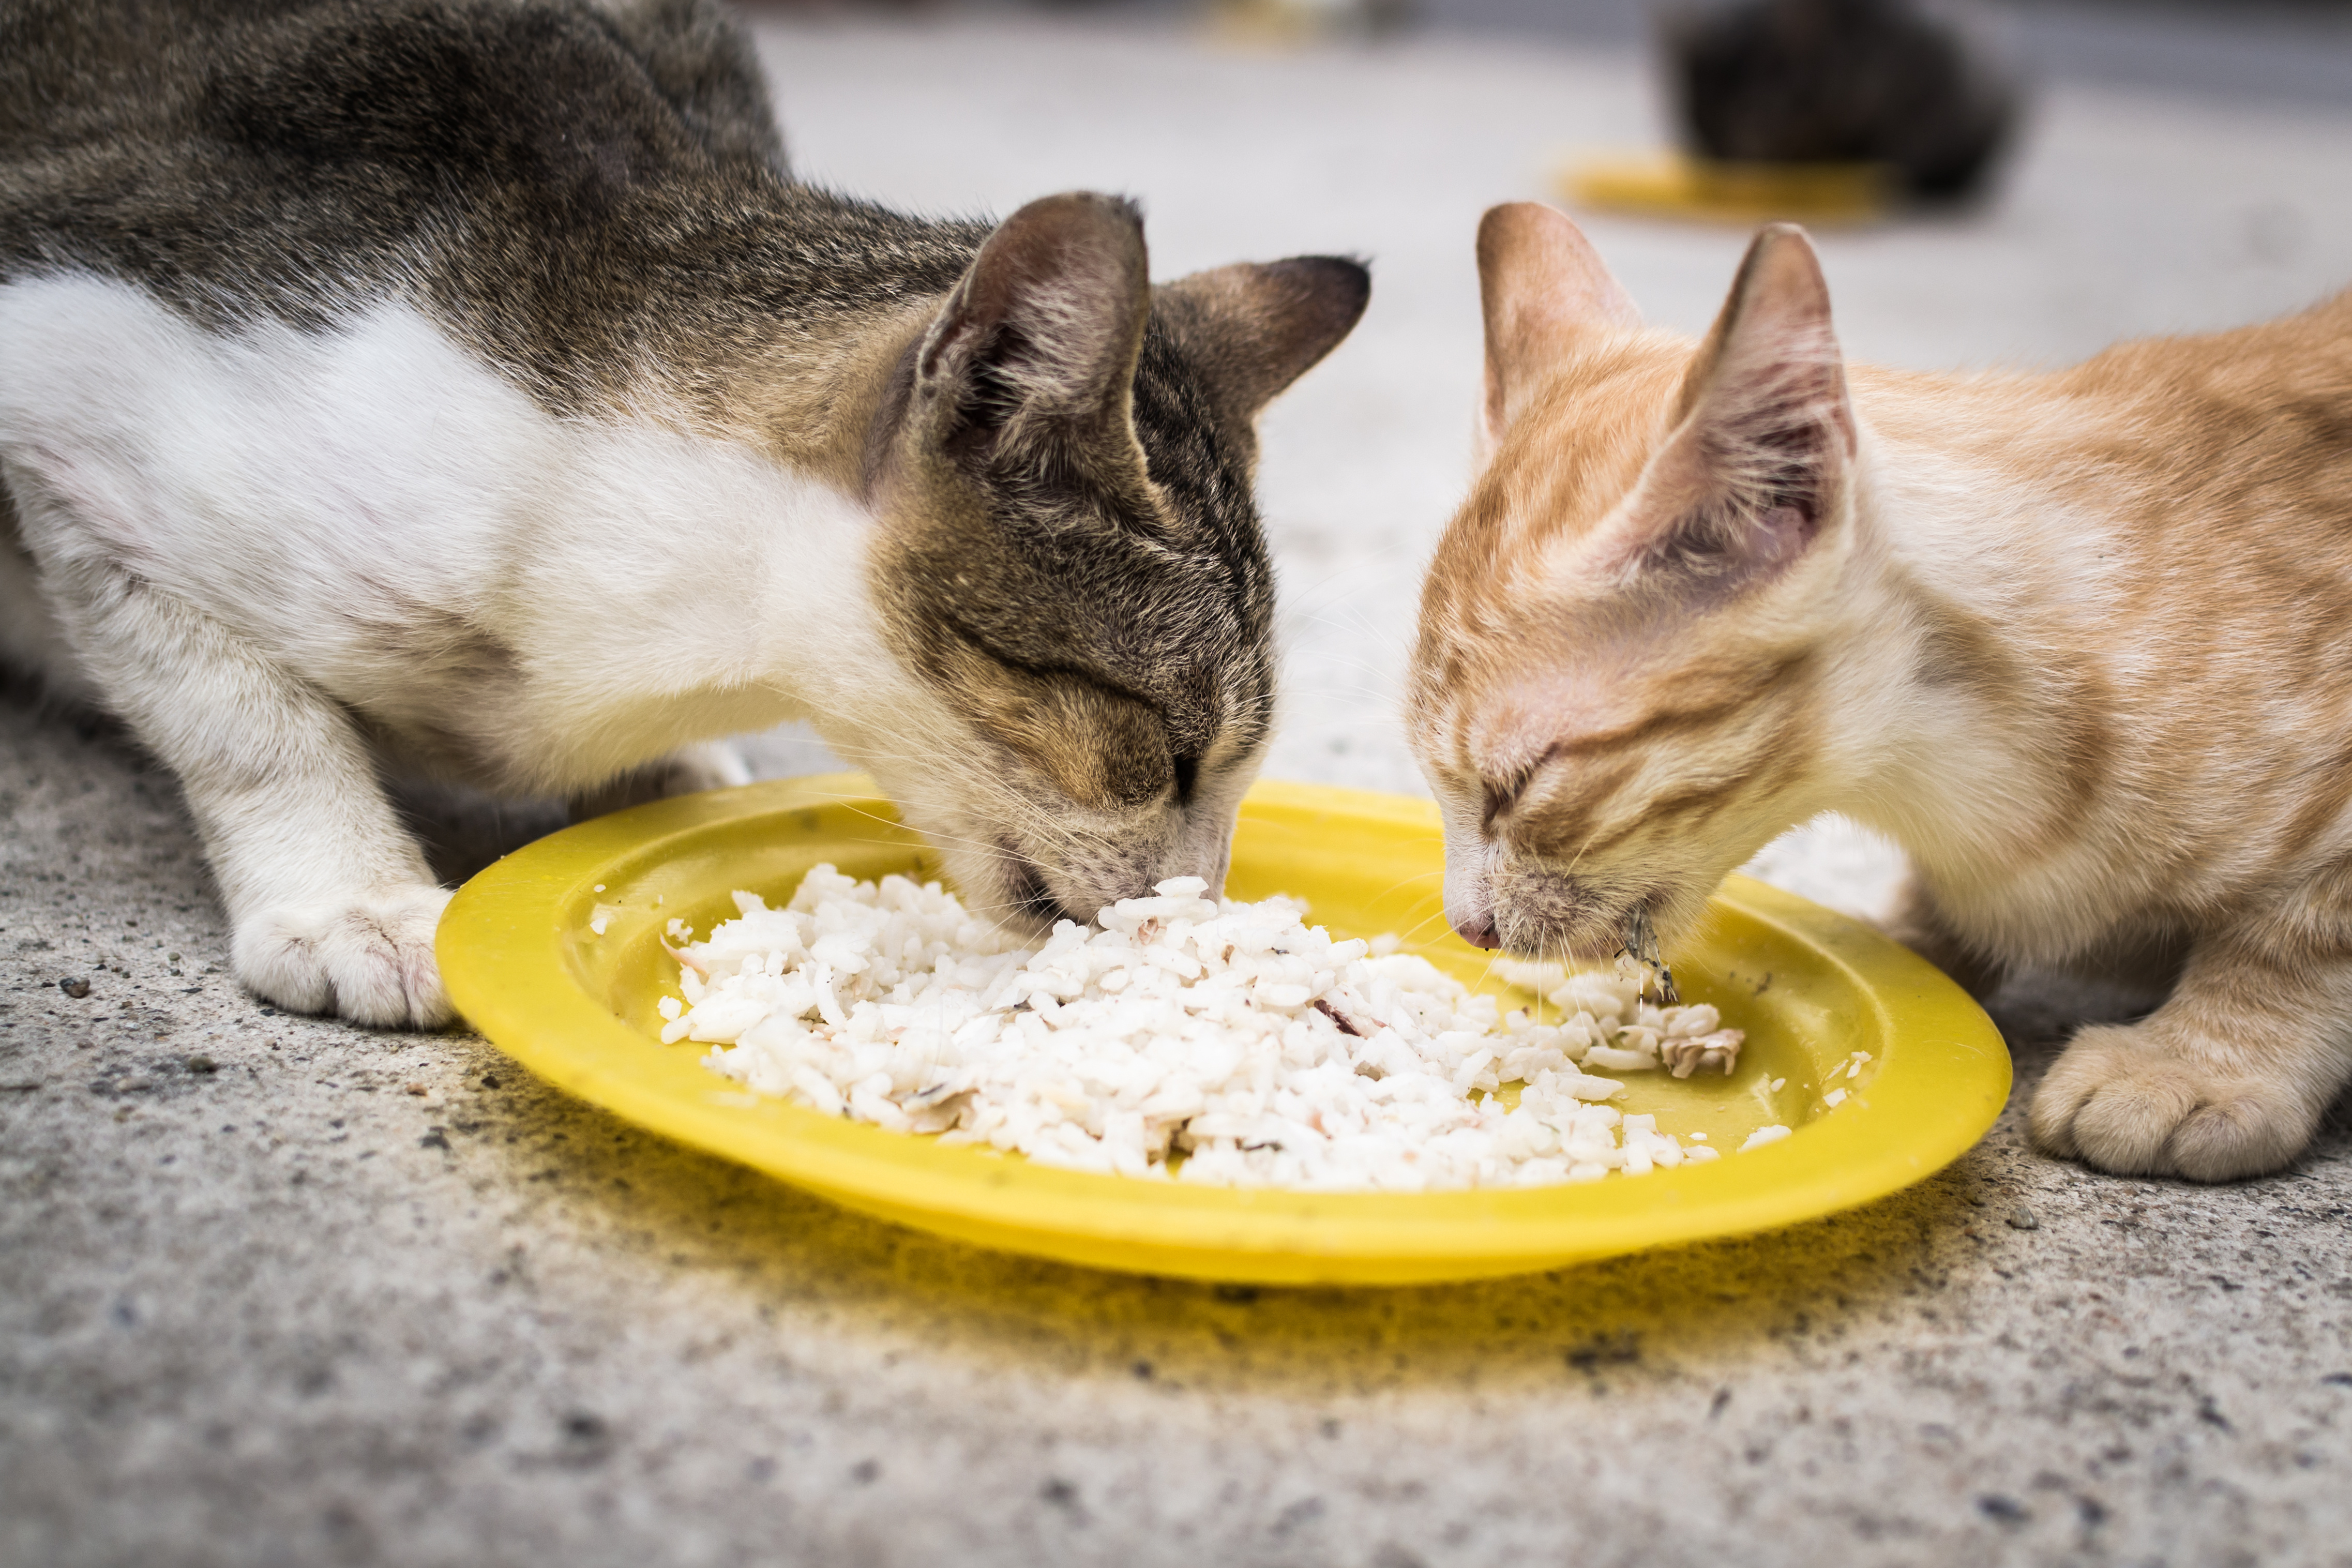 15 cat enthusiasts cat diet tips amp what to feed cats